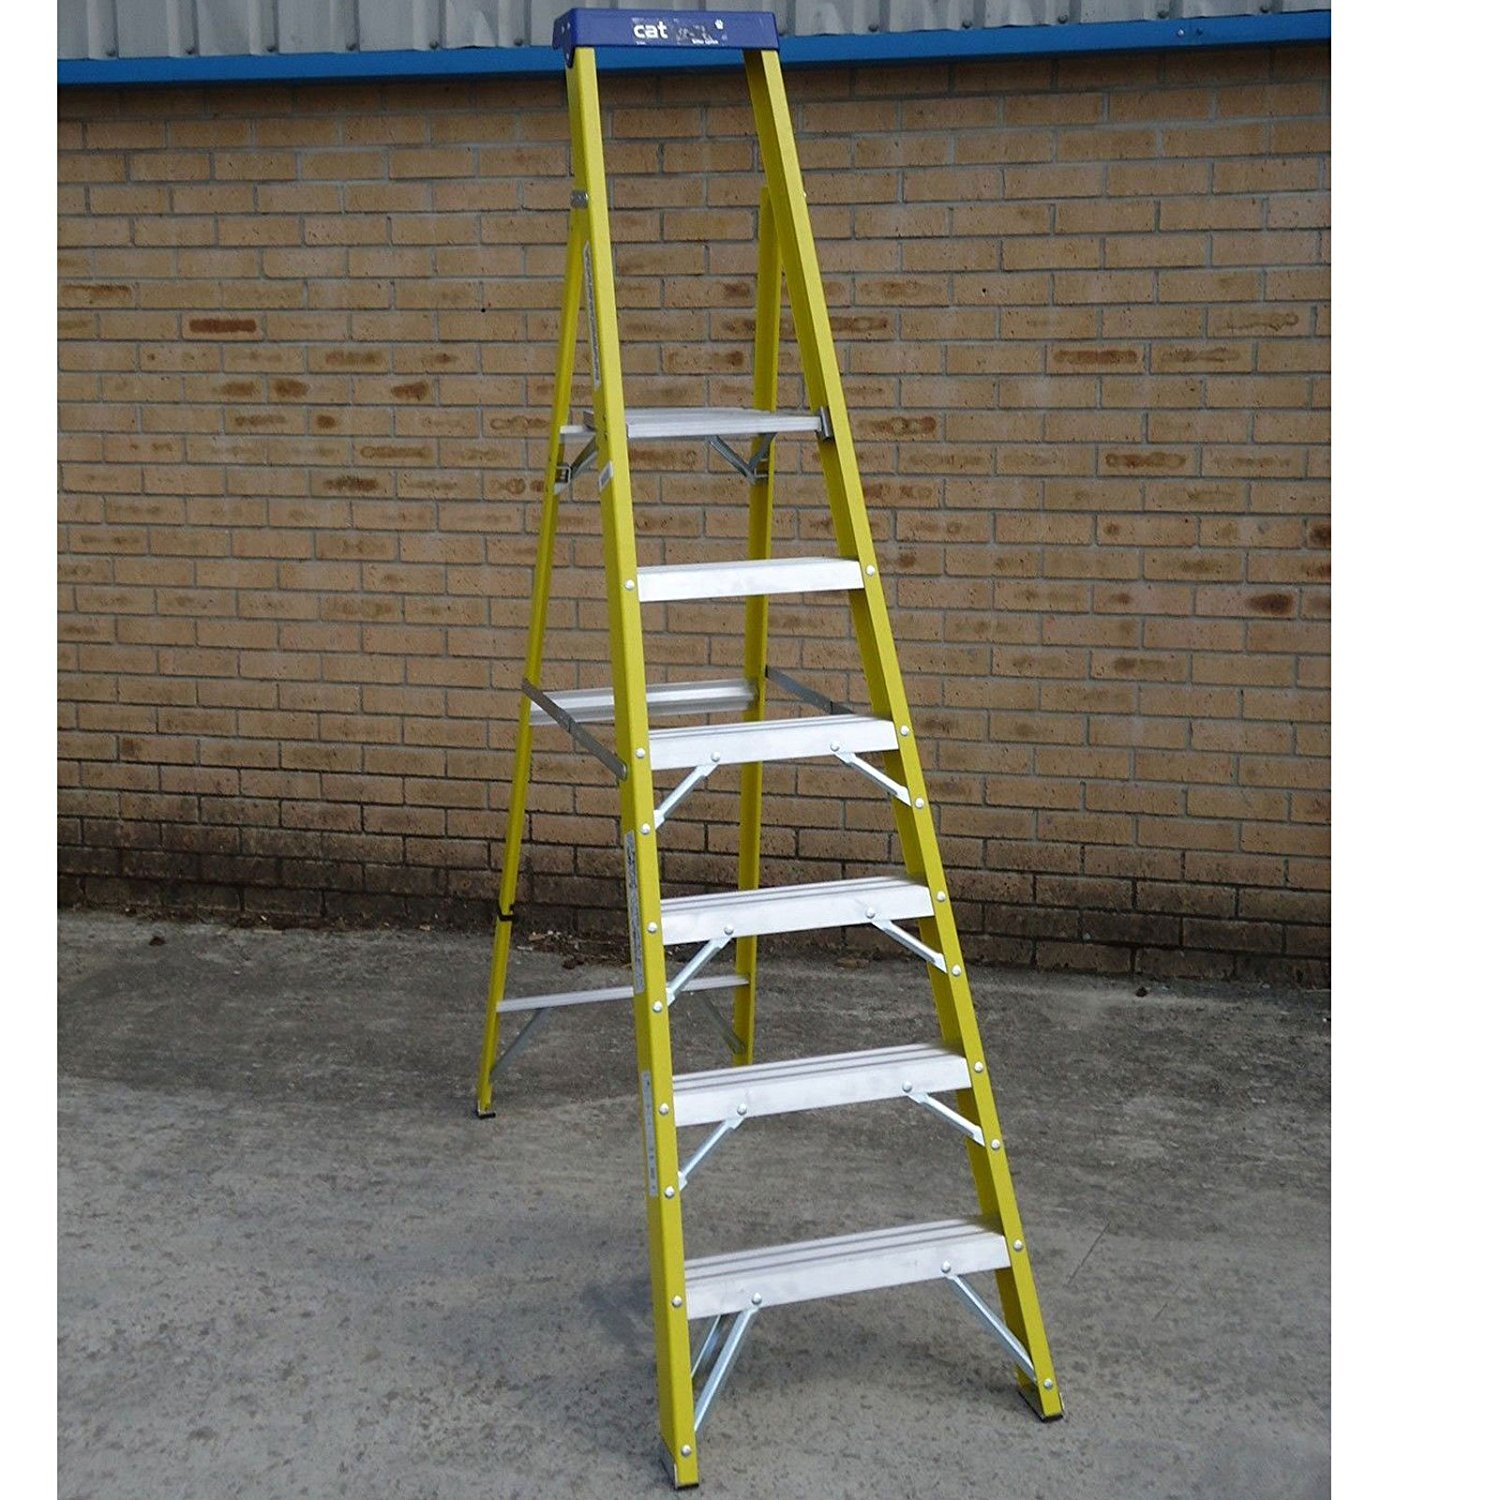 6 Tread Catwalk S400 Fibreglass Platform Step Ladder Youngman 527458